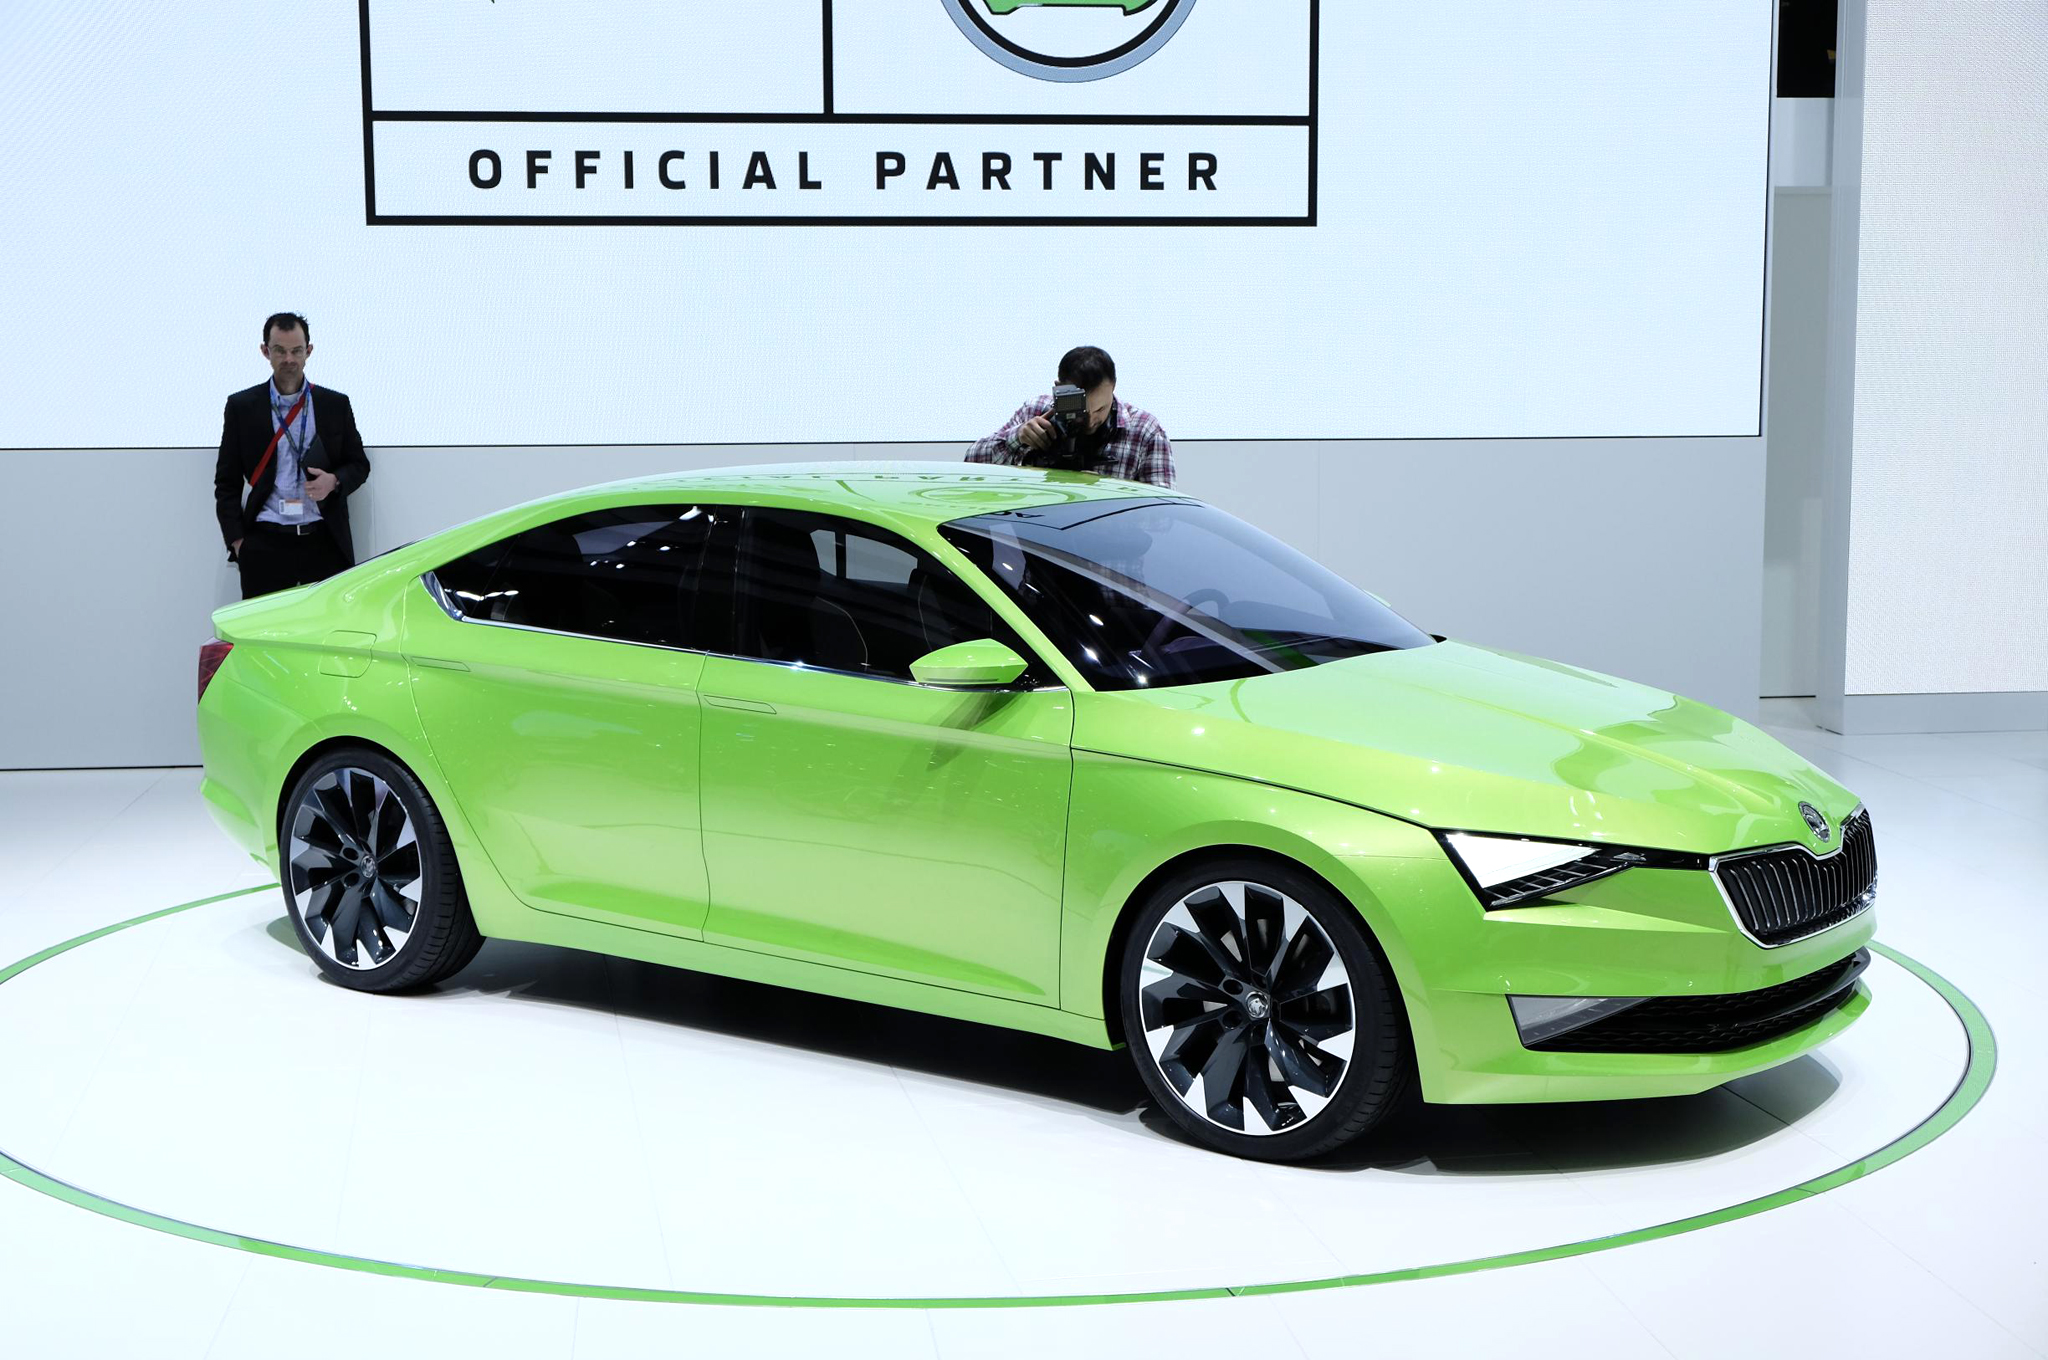 Skoda VisionC Concept Aims for Style at Geneva Show